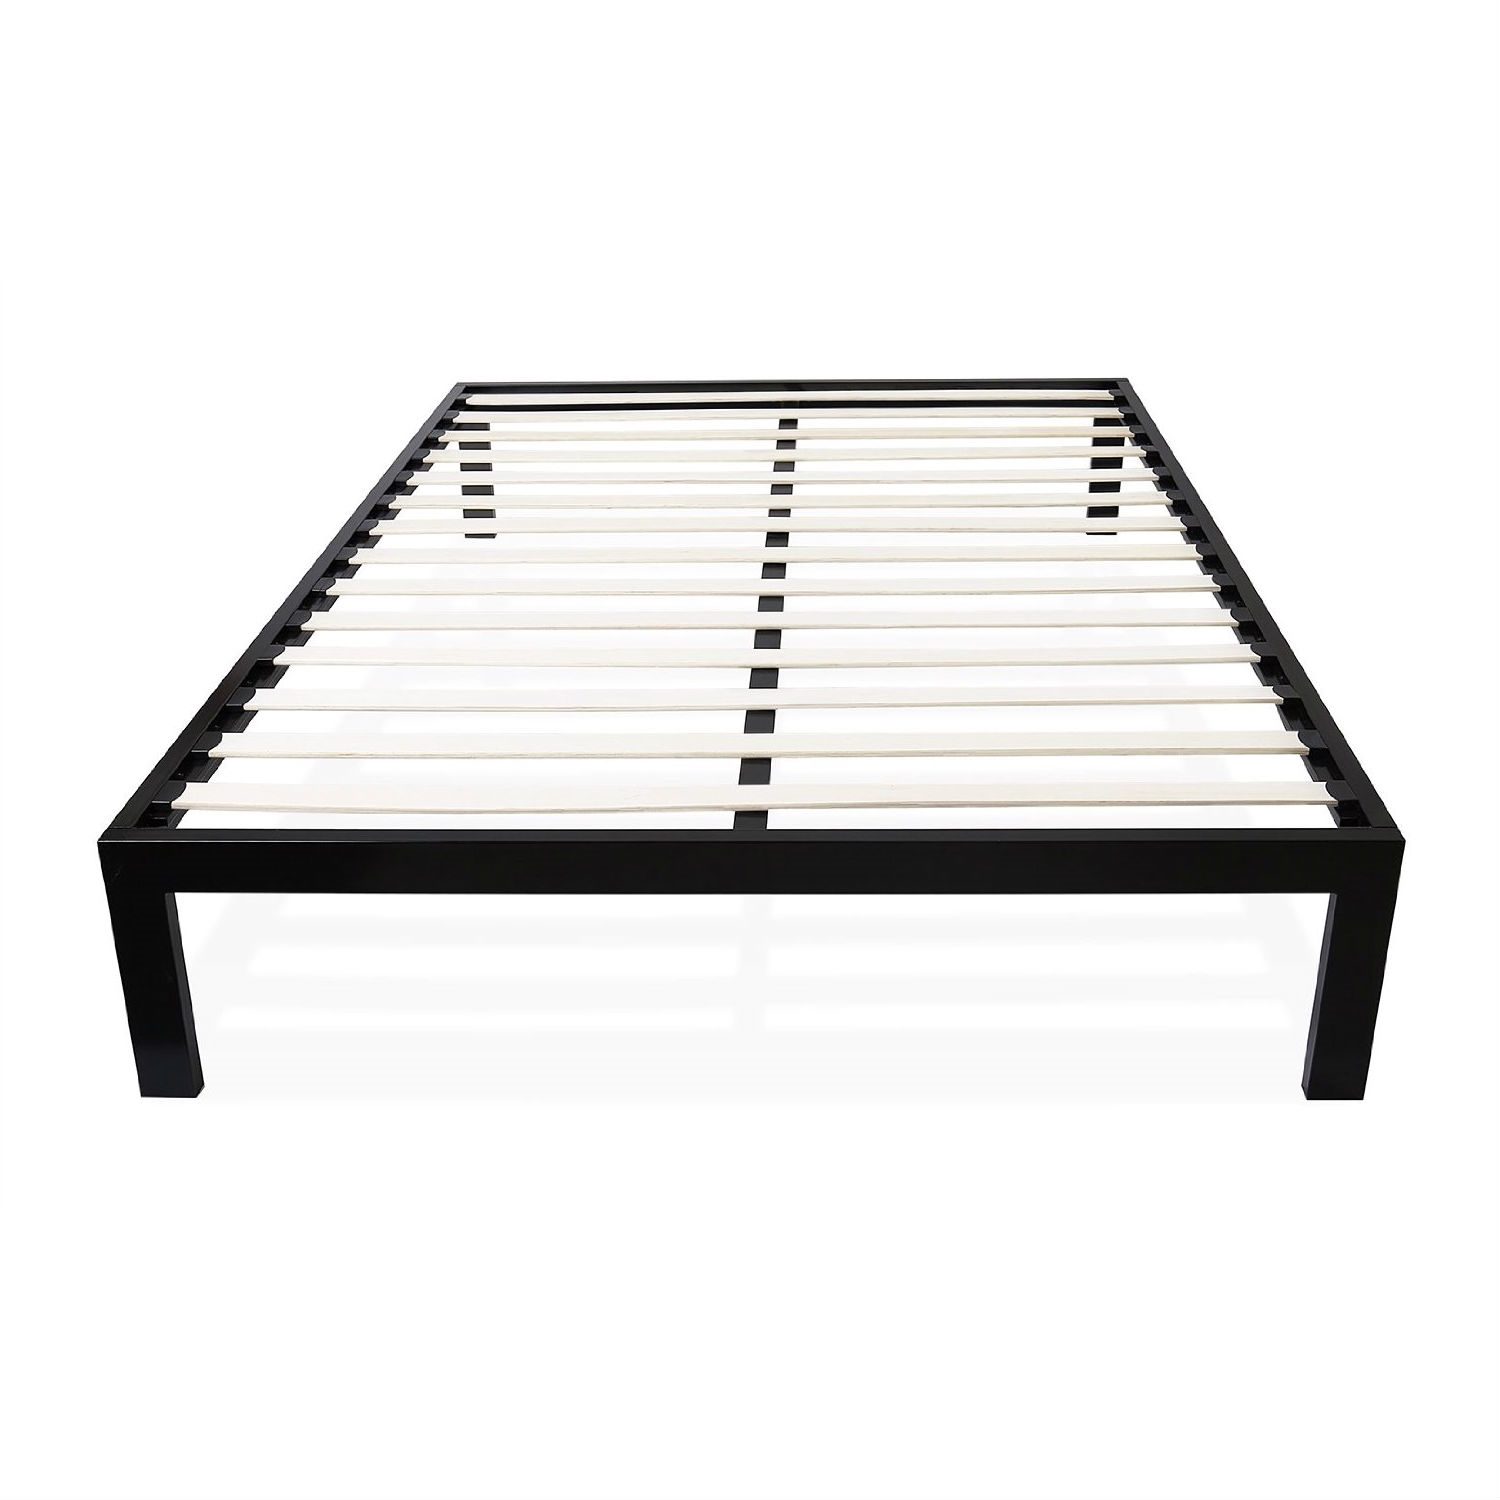 king size asian style simple metal platform bed frame with wood